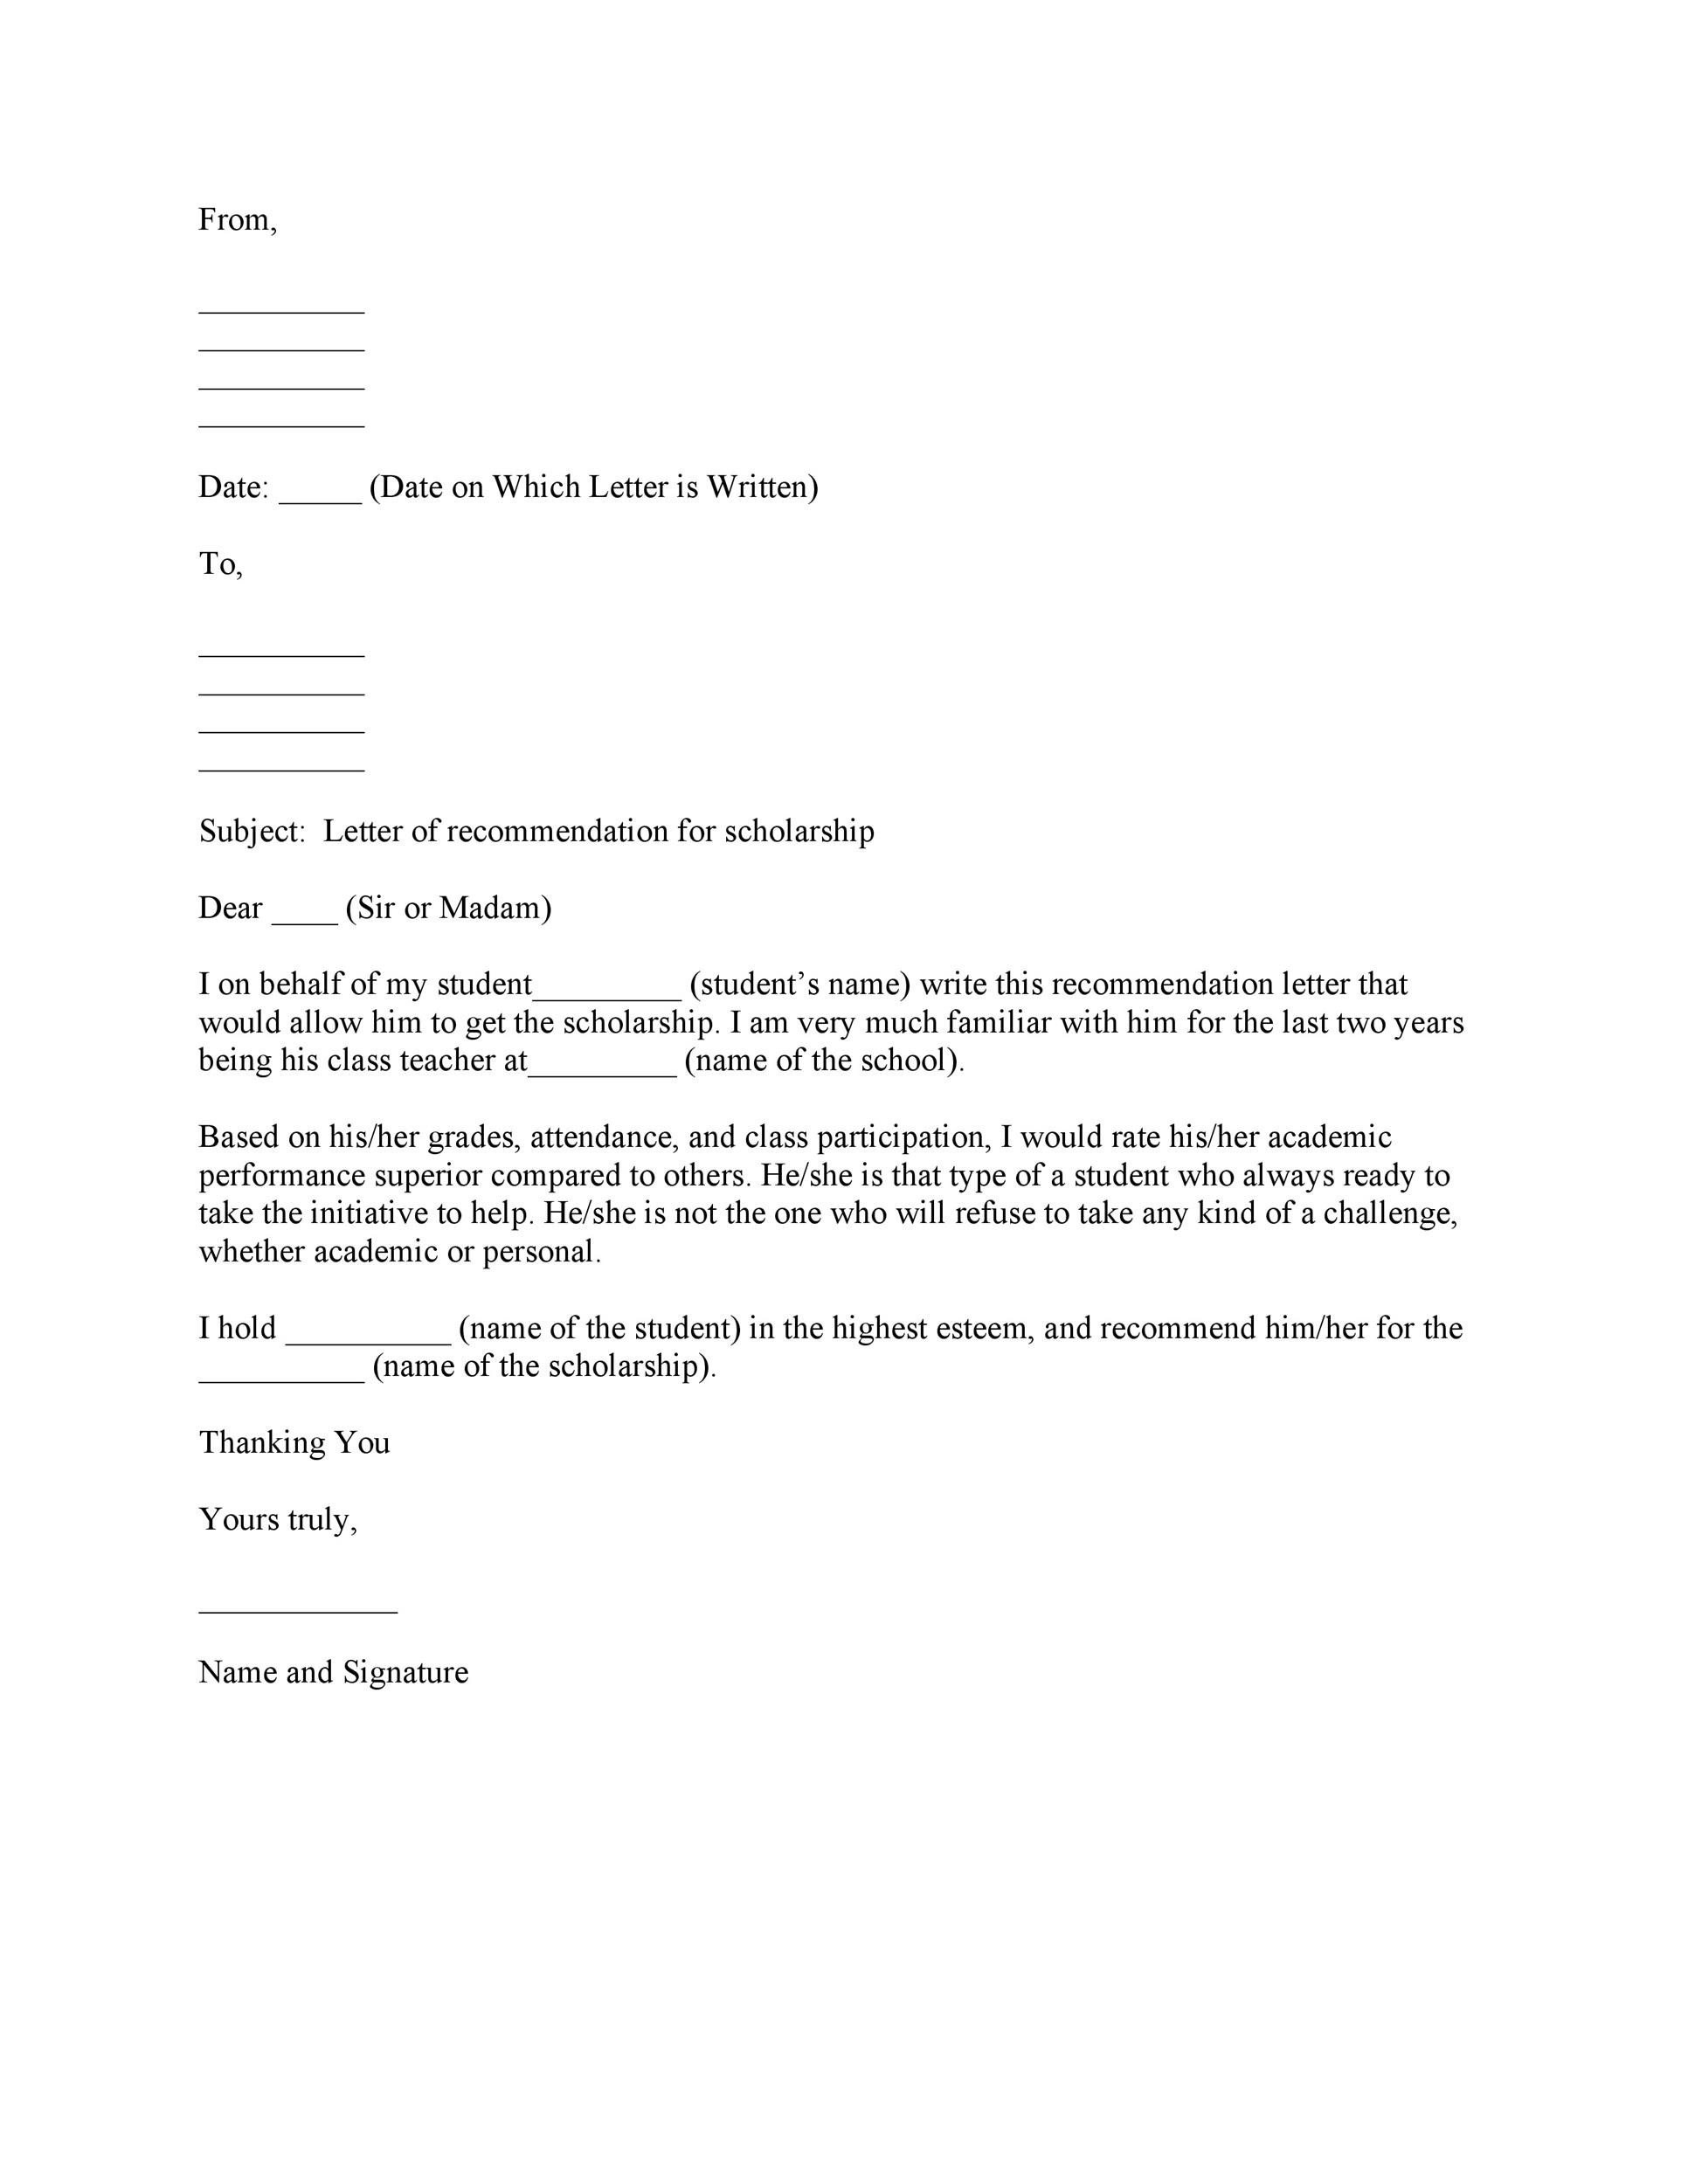 Letter Of Recommendation Samples For Teachers from templatelab.com